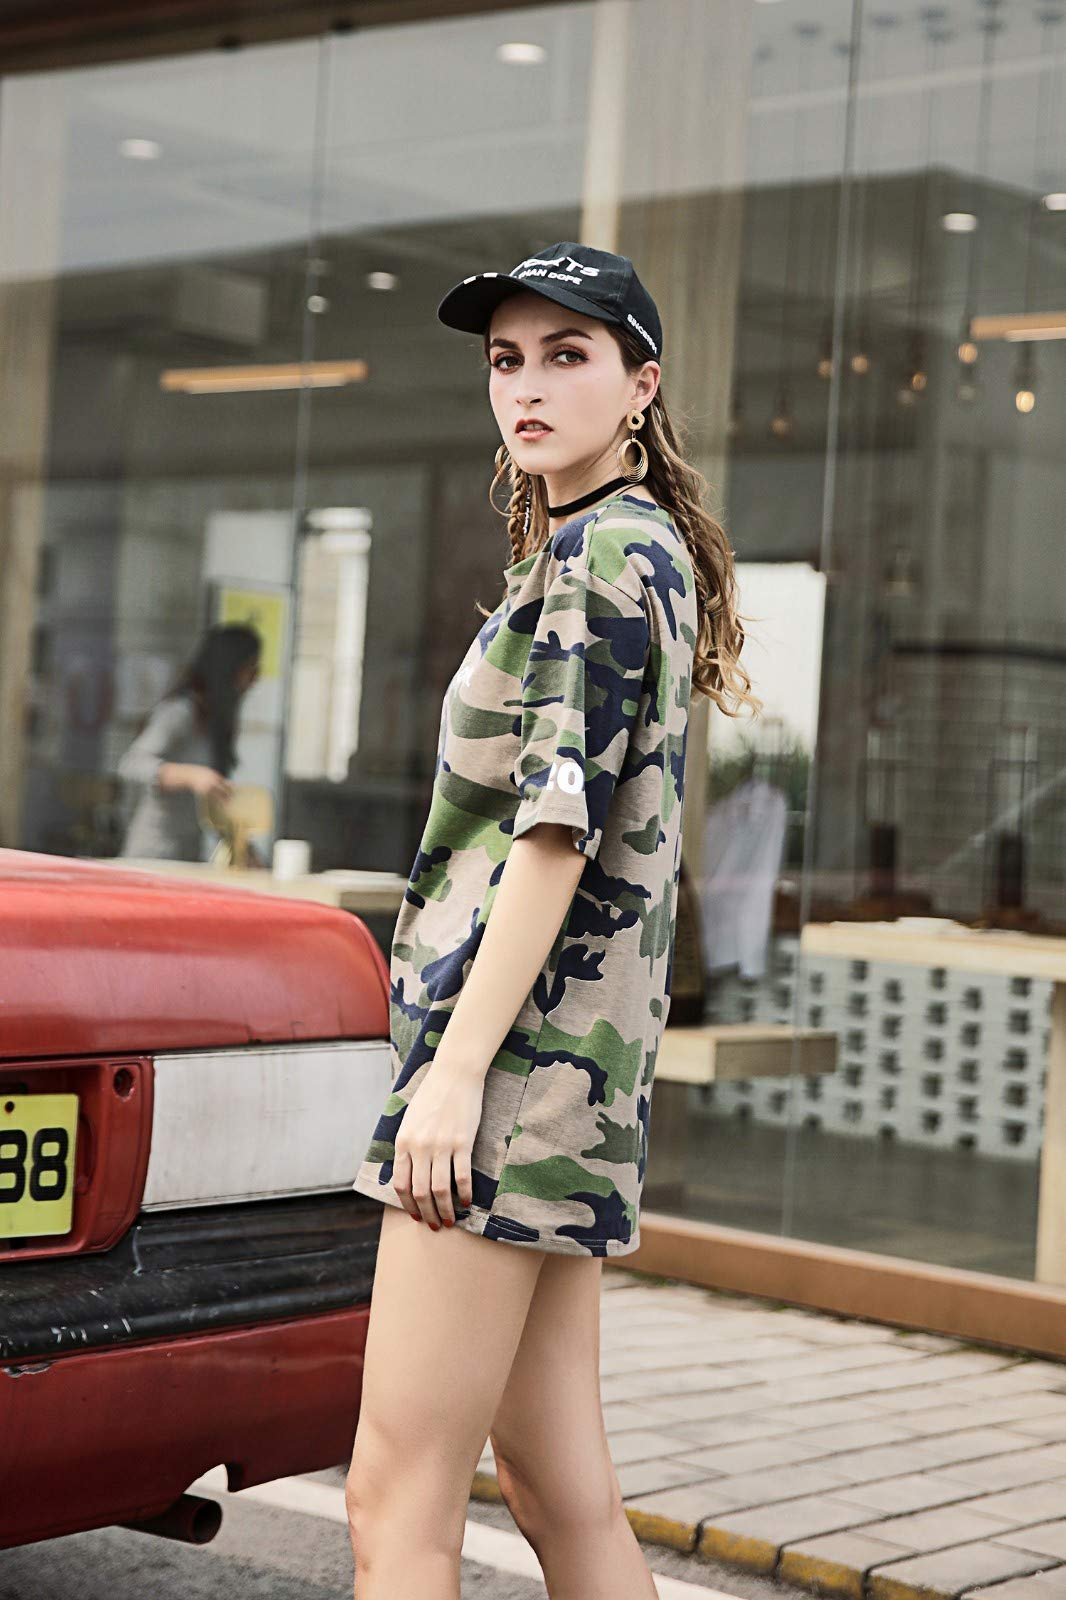 Women Lady's Casual Camouflage Printed Short Sleeve T-Shirt Tops Camis Tunics Blouse